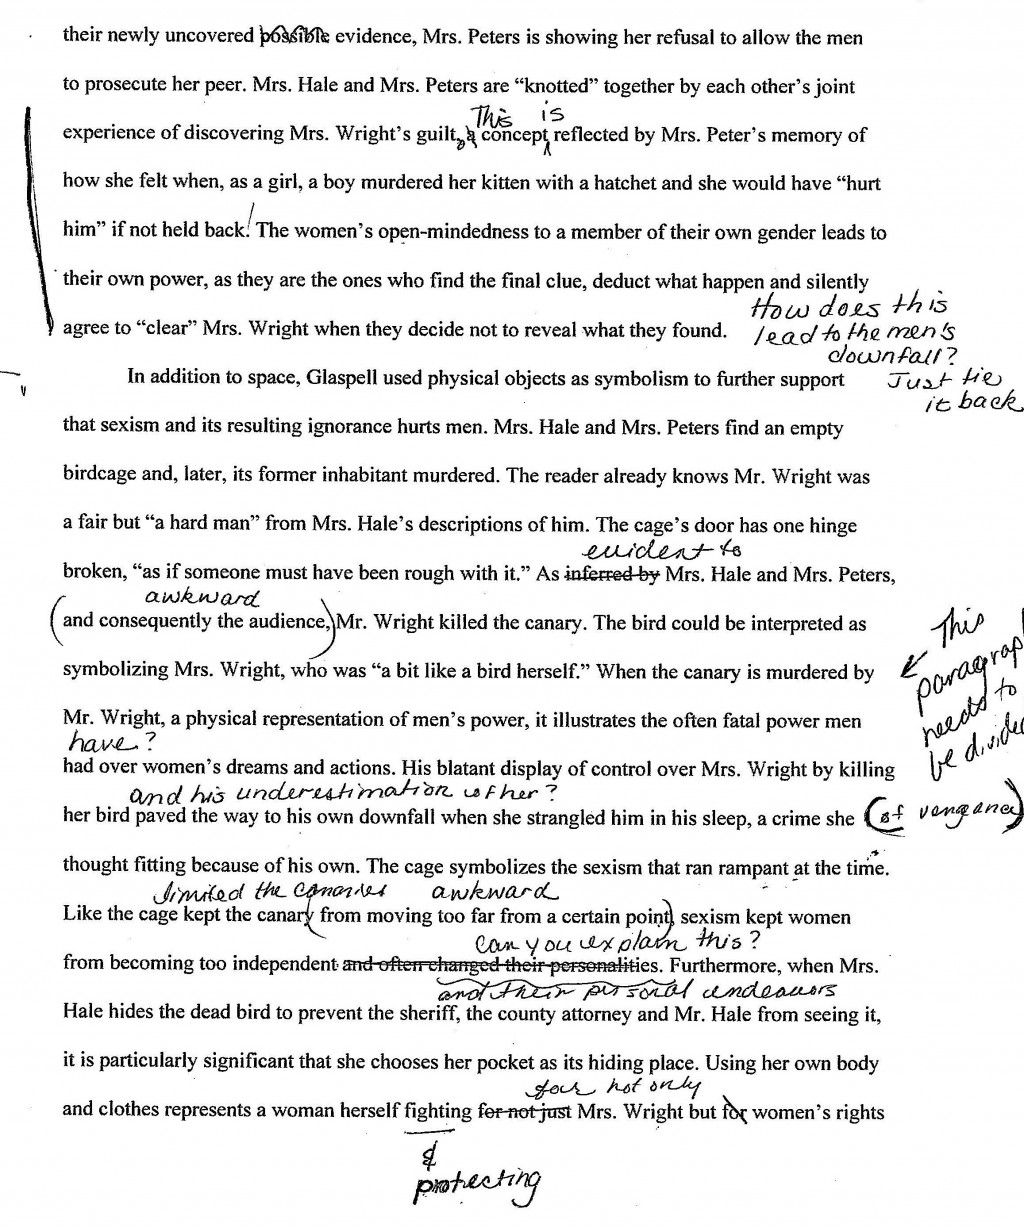 002 Trifles Essay Example Formidable Questions Feminism Topics Large